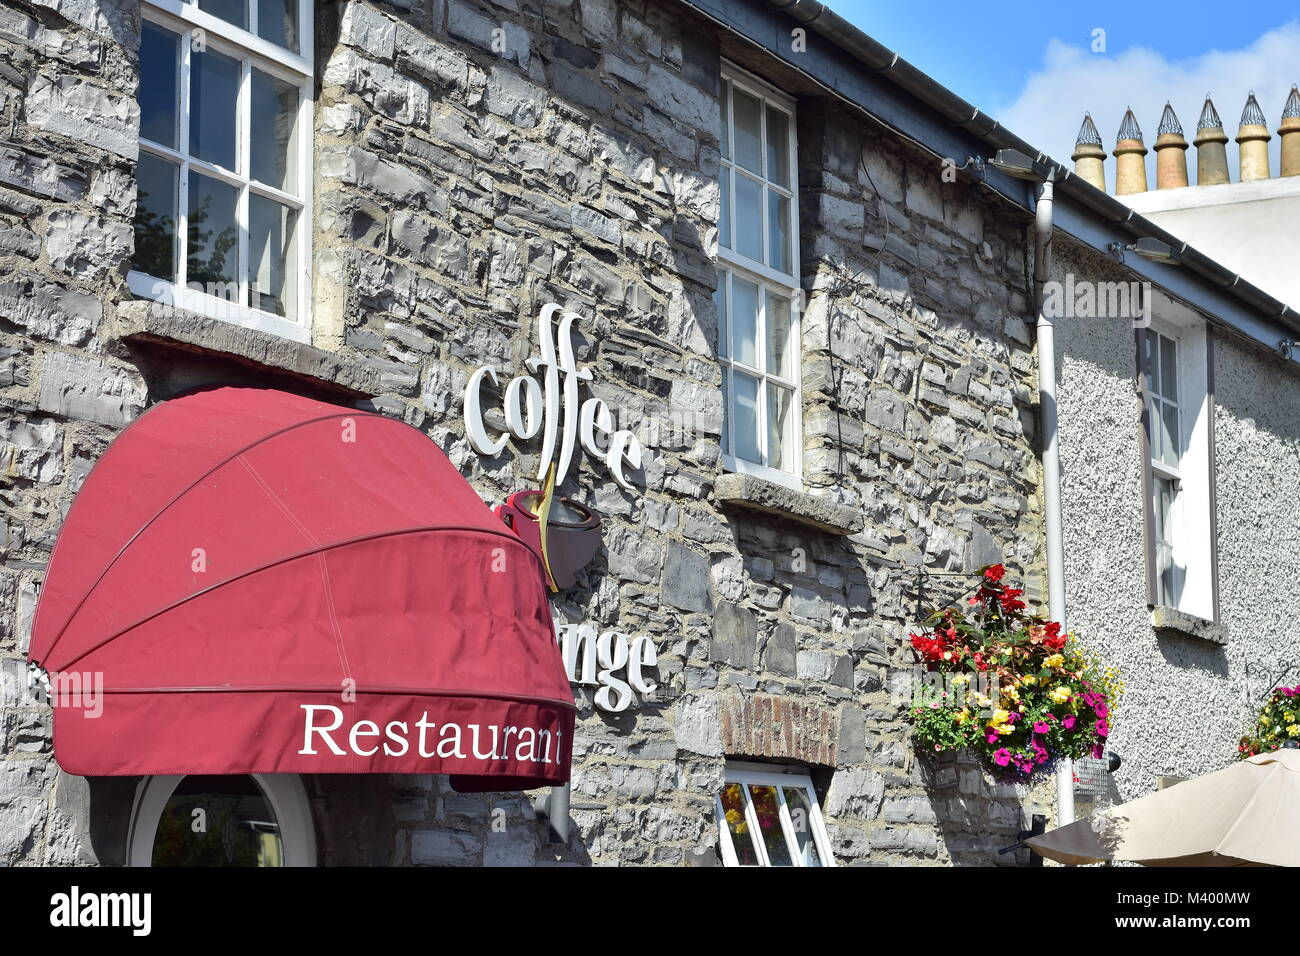 Restaurant in vintage stone house in town of Maynooth in Ireland. - Stock Image